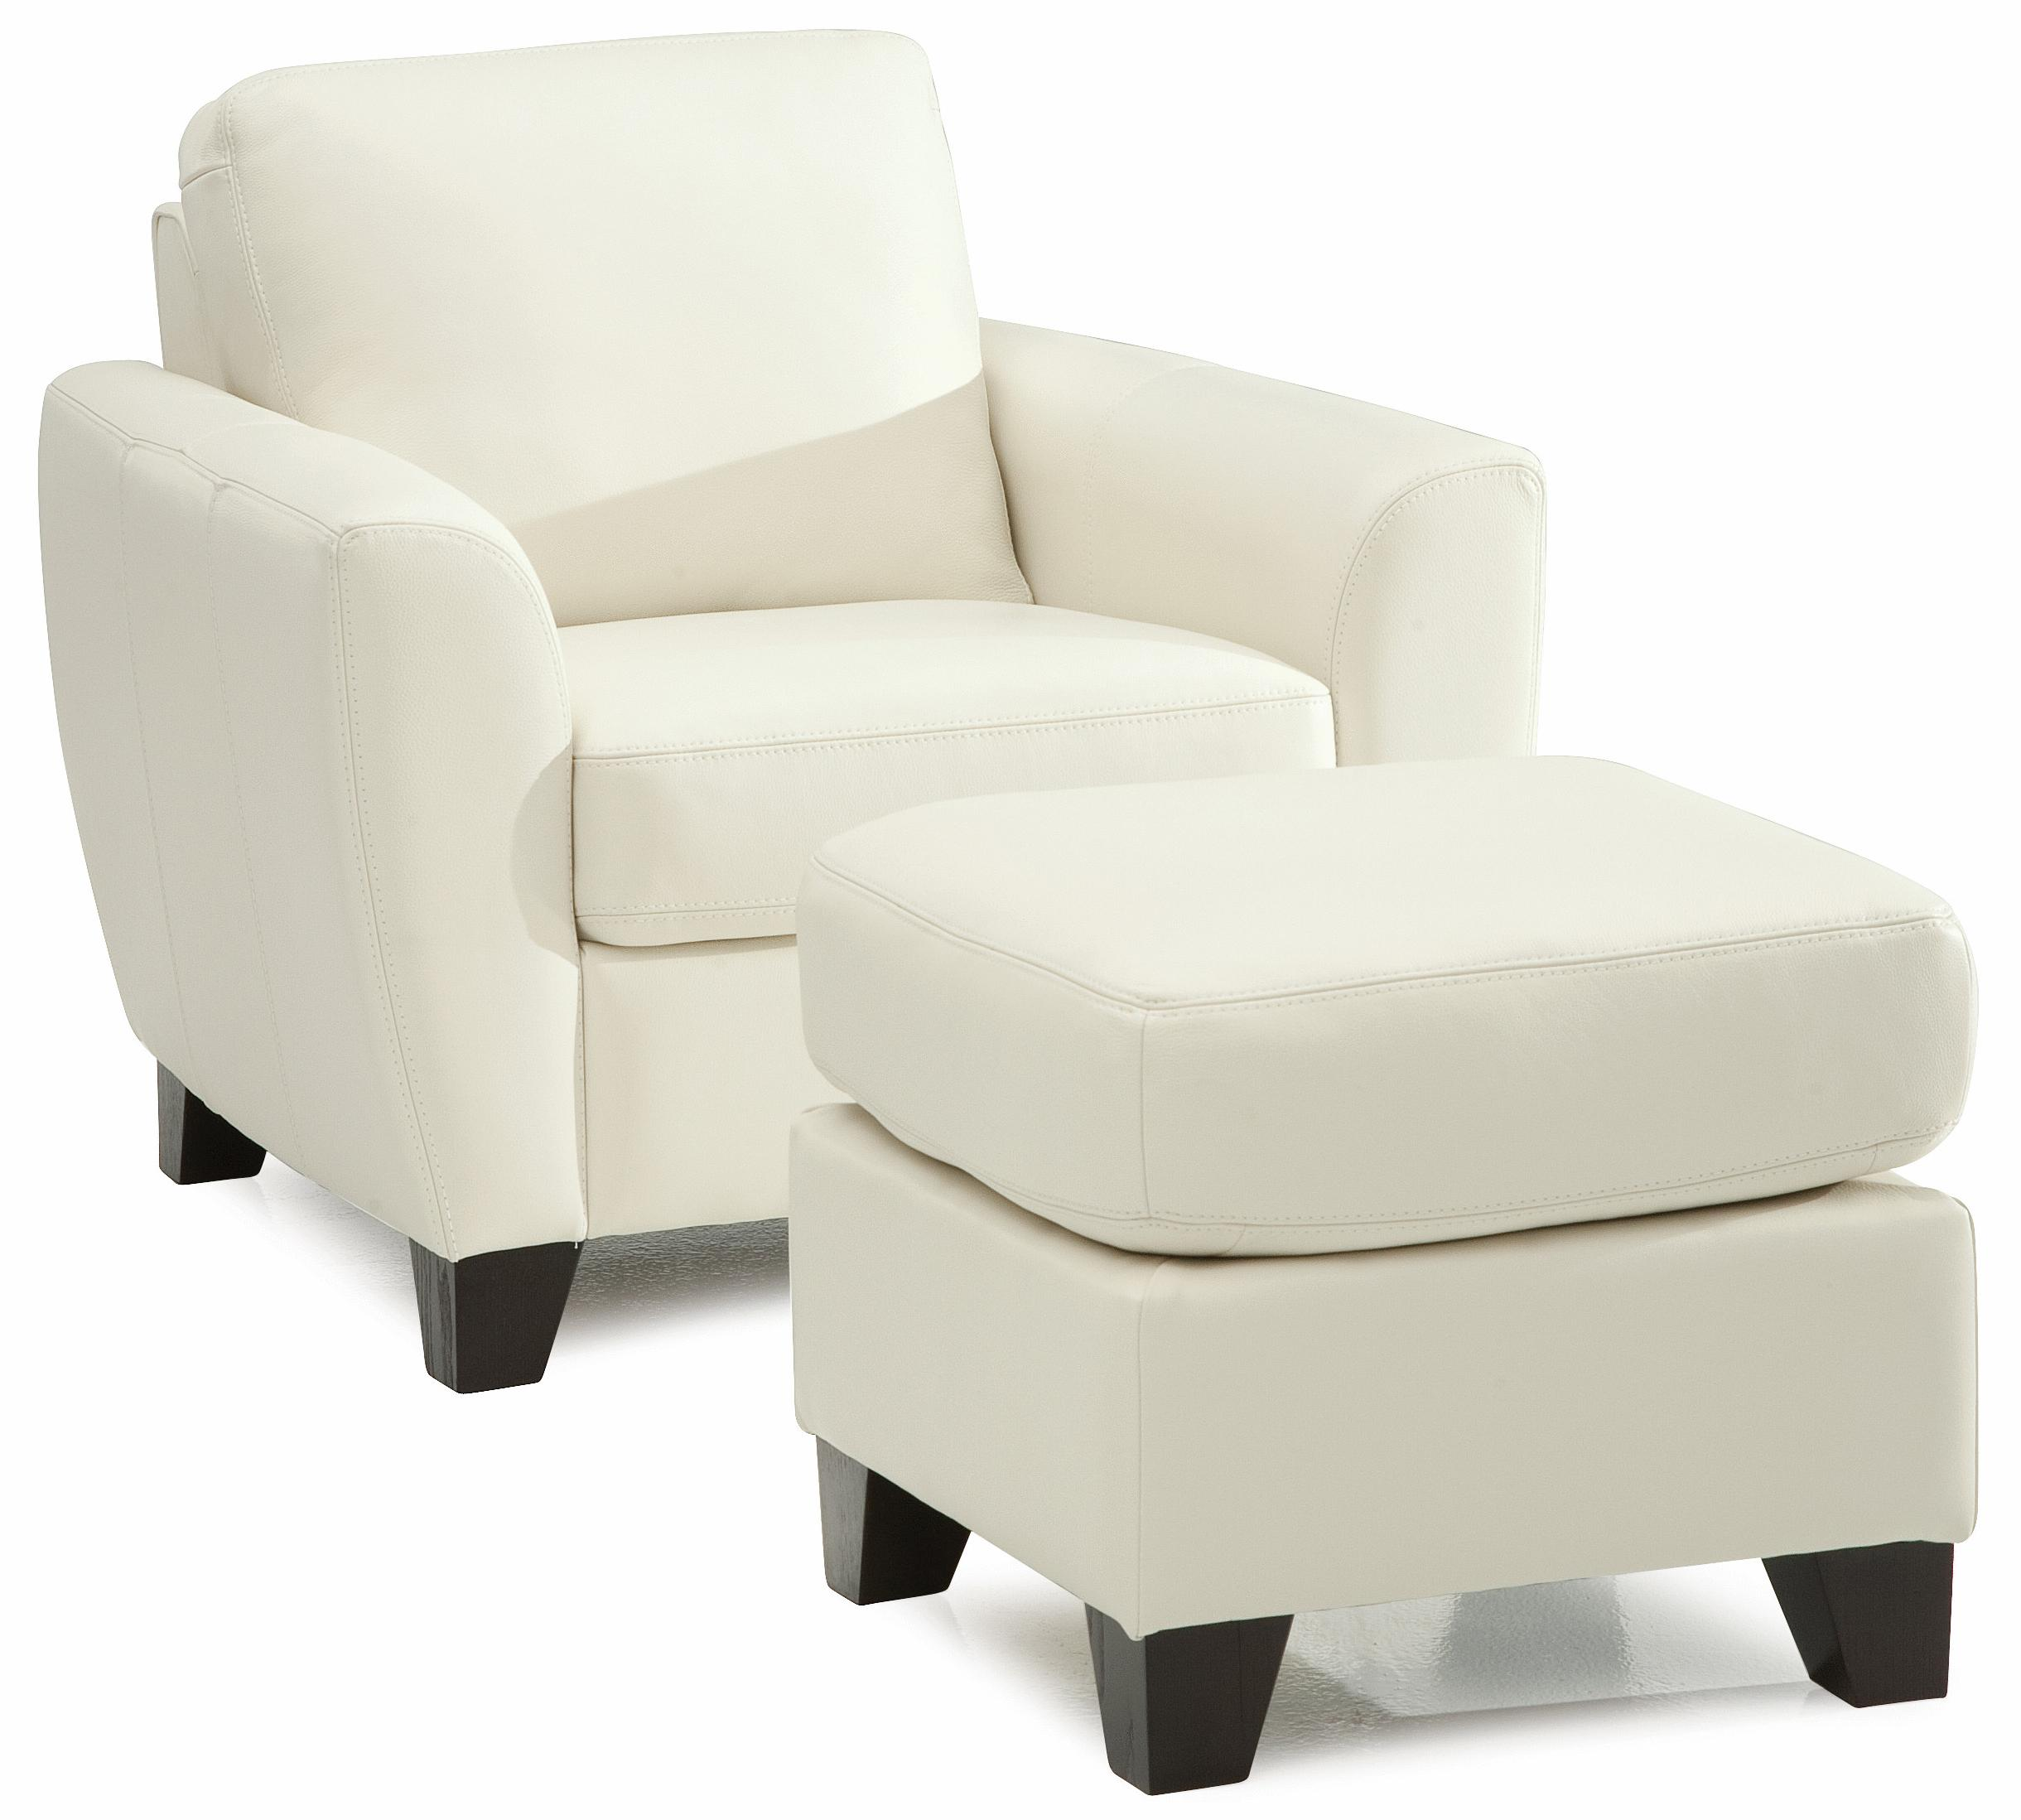 palliser stationary sofas bedroom sofa beds marymount contemporary chair and